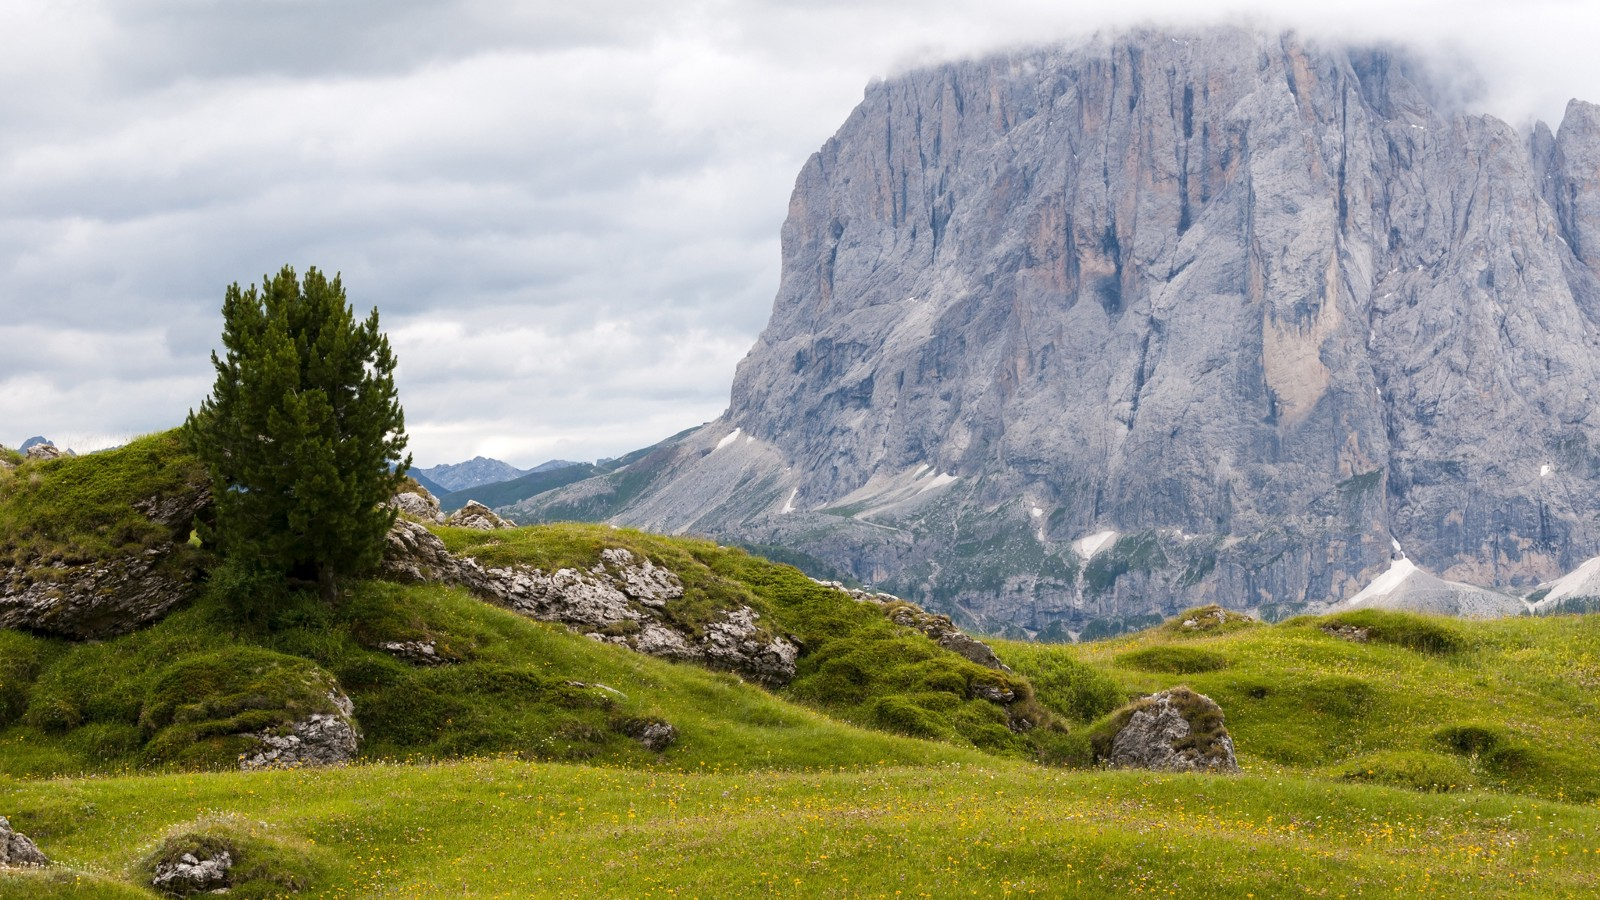 Mount Seceda area in Val Gardena, Italy